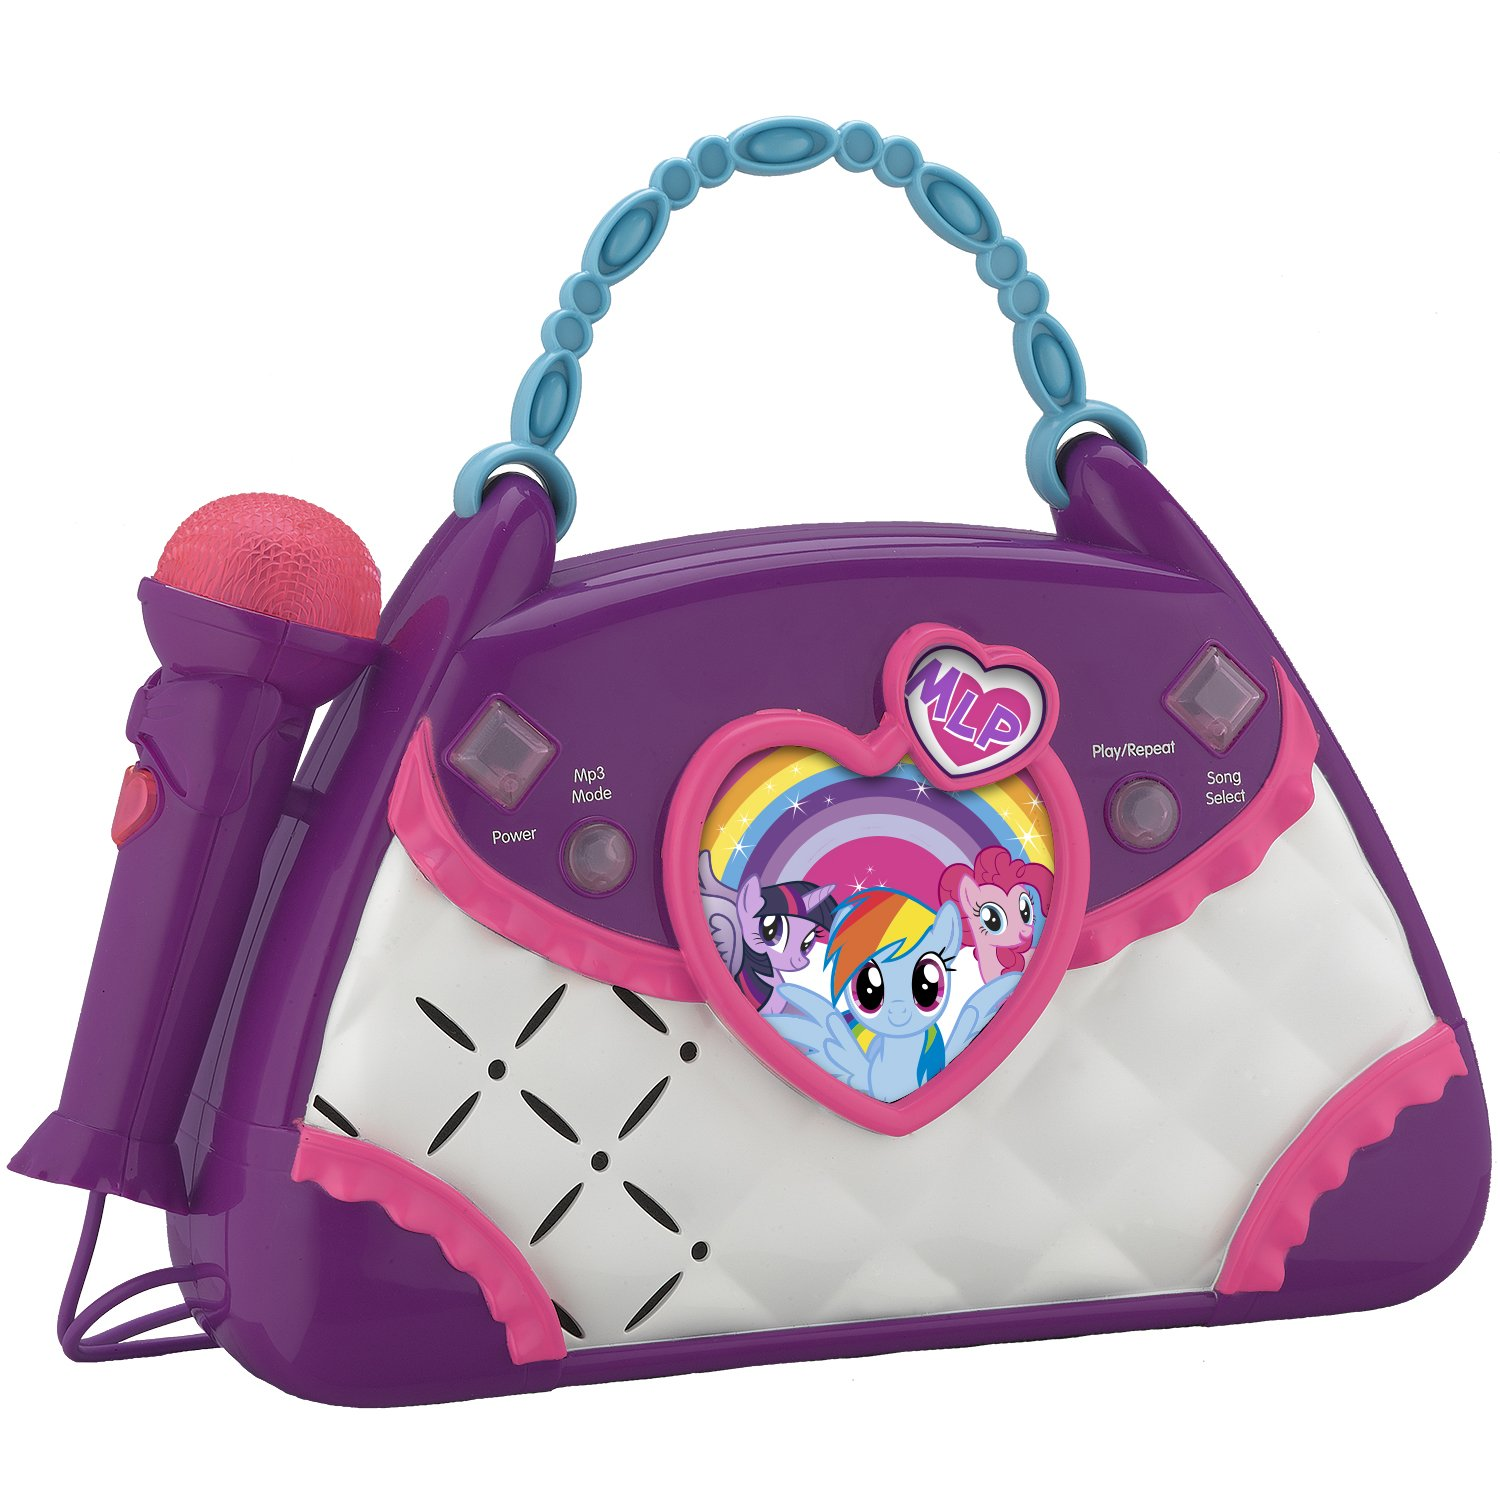 My Little Pony Magical Music Sing Along Boombox by My Little Pony (Image #1)